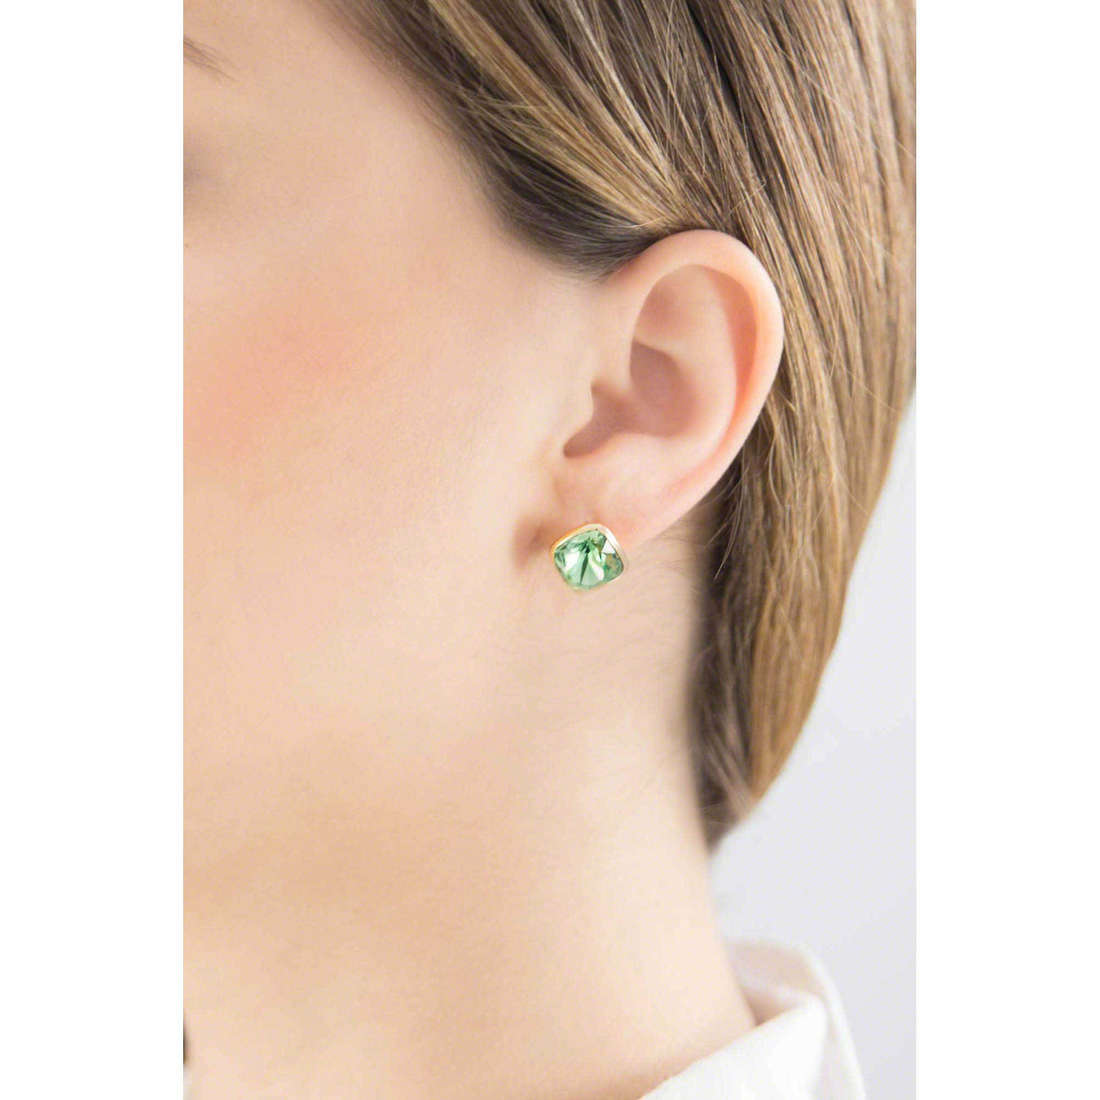 Brosway earrings E-Tring woman BRT27 indosso